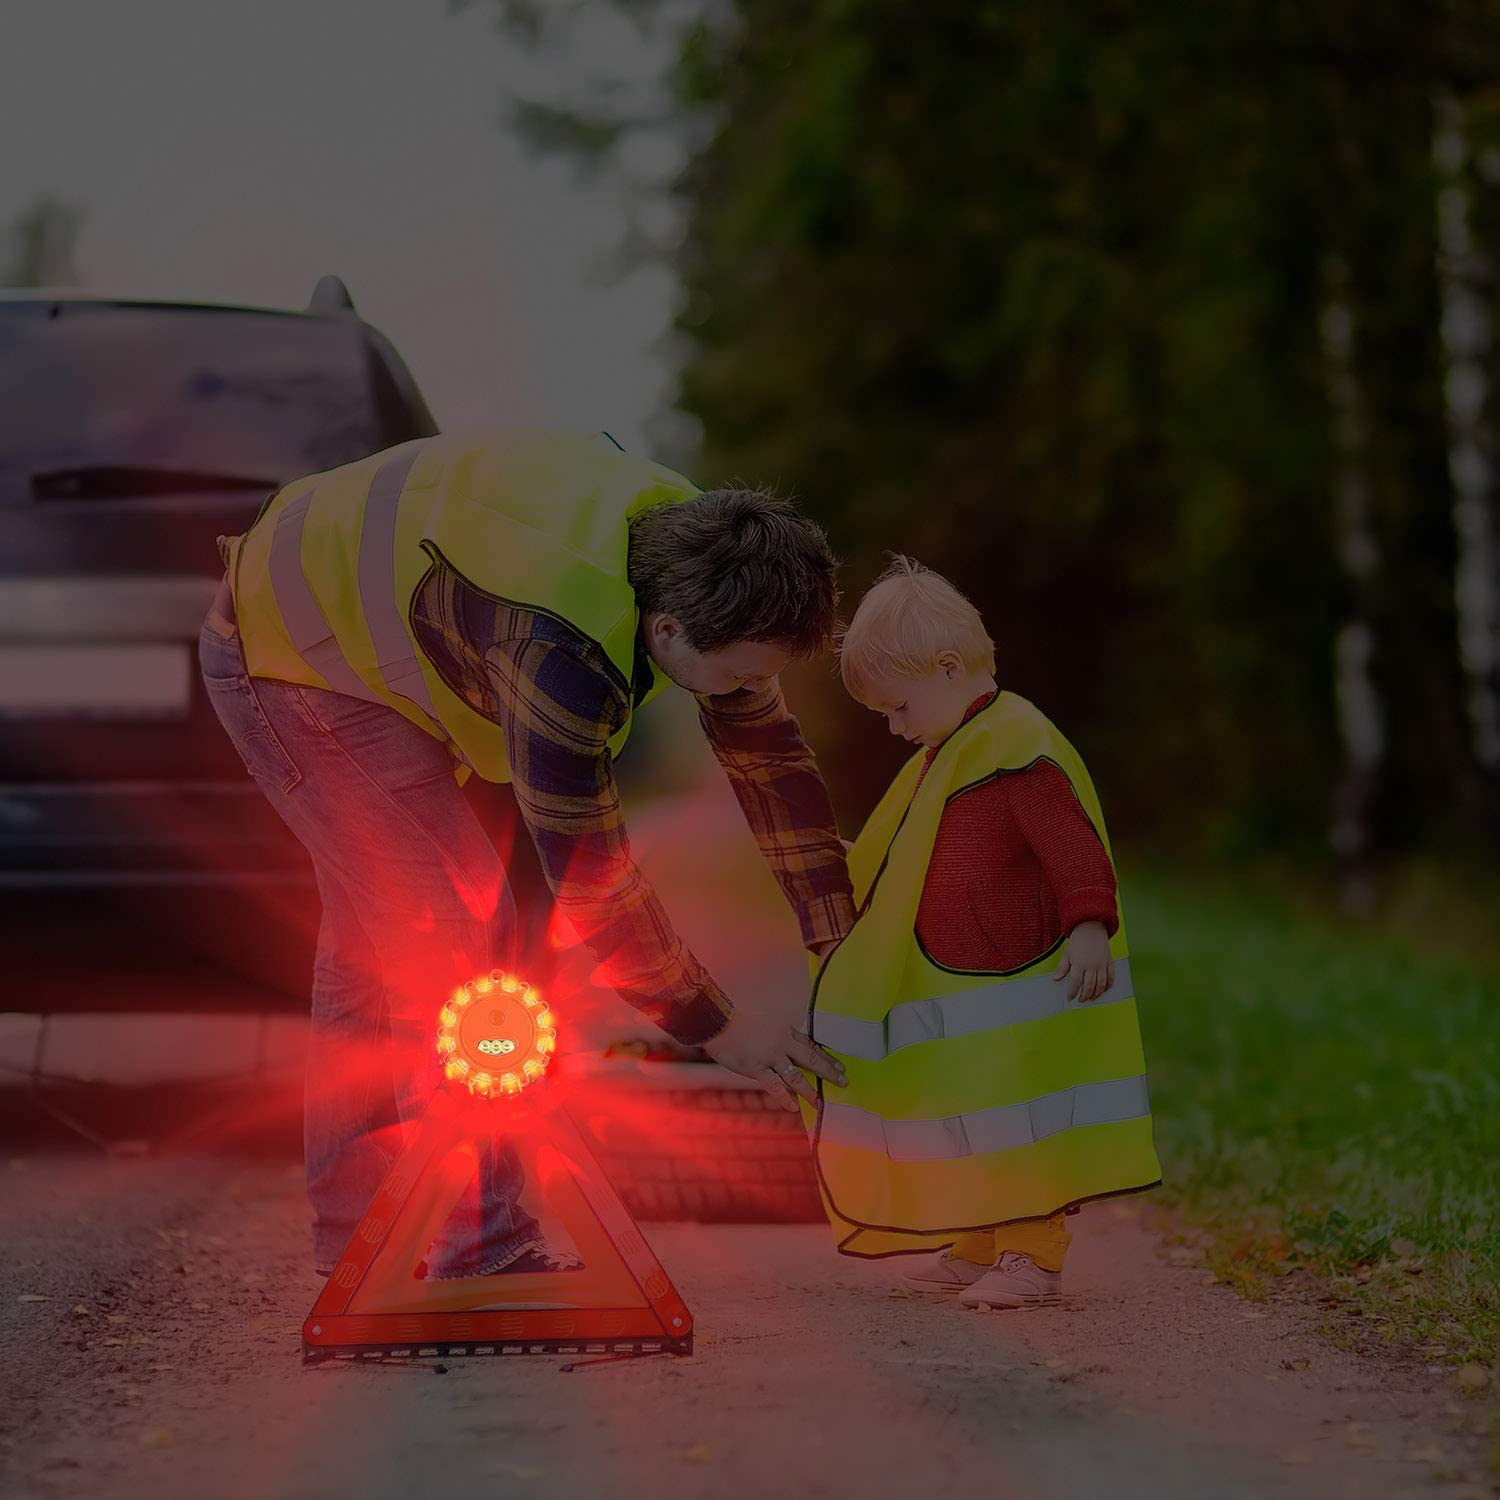 8 Pack AK LED Road Flares Safety Flashing Warning Light Roadside Emergency Disc Beacon Kit for Vehicles Boats with Magnetic Base /& Hook Batteries Not Included Premium Storage Bag 8